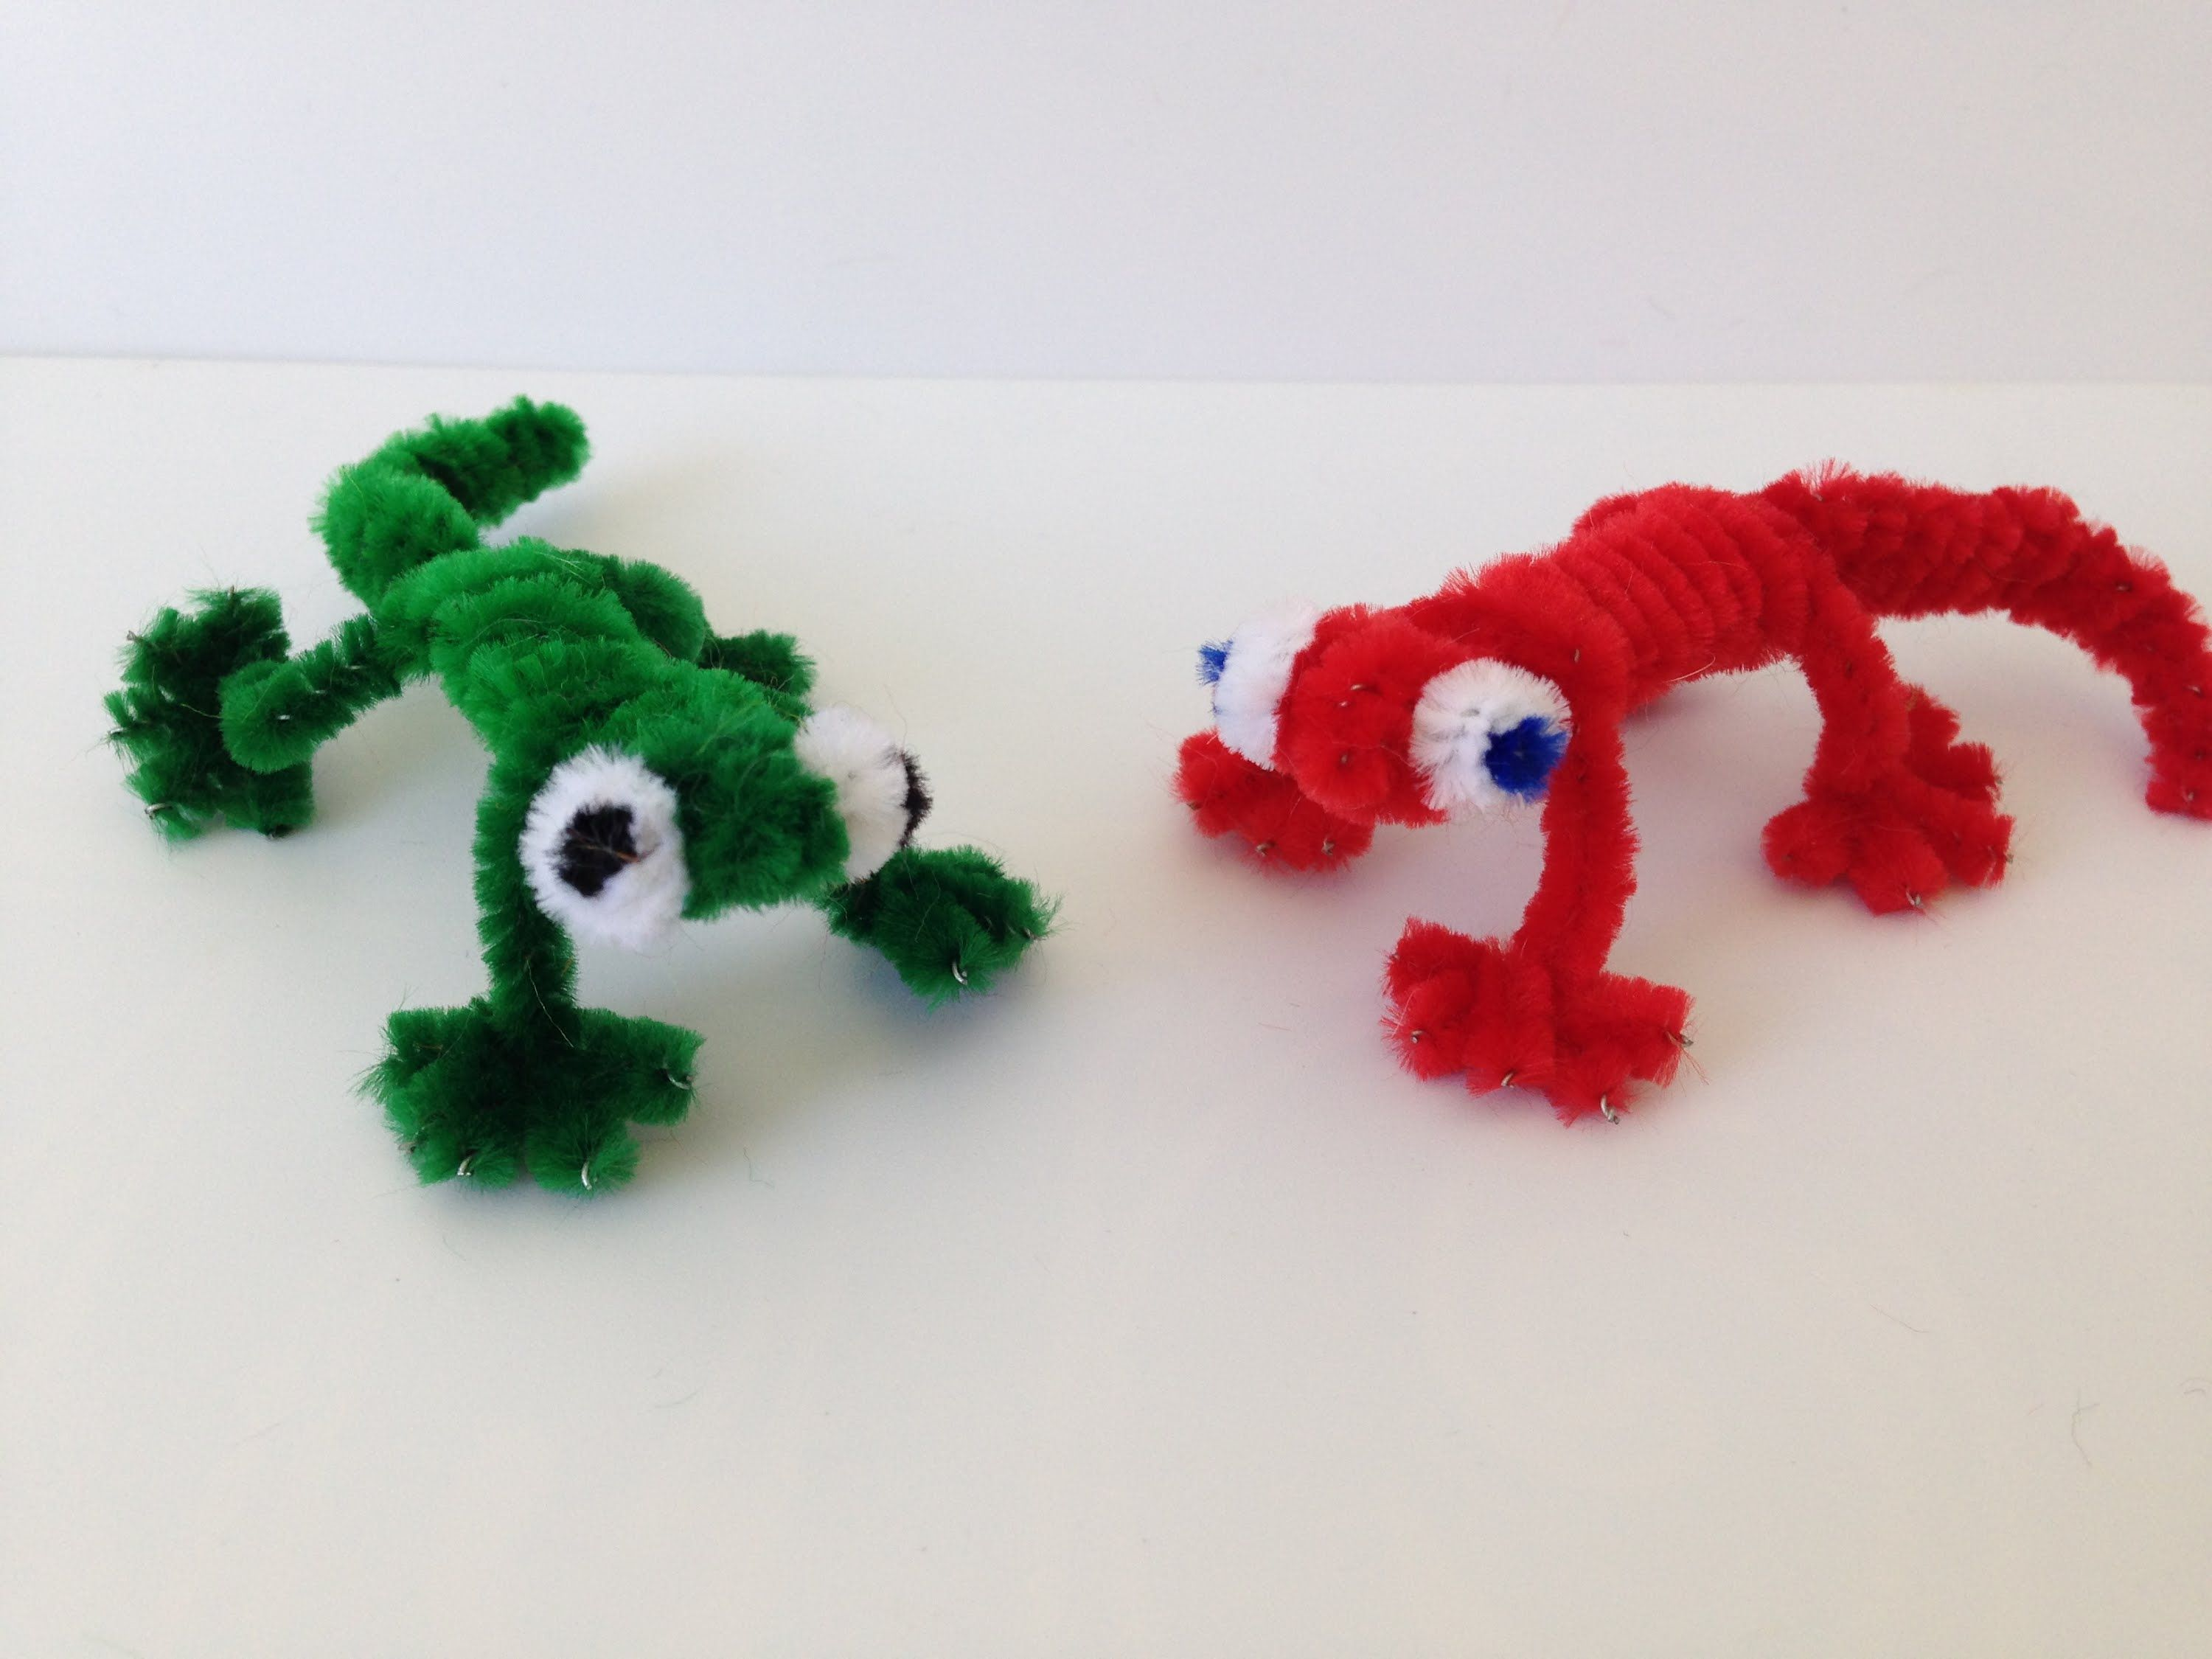 Pipe cleaners for crafts - How To Make A Pipe Cleaner Lizard